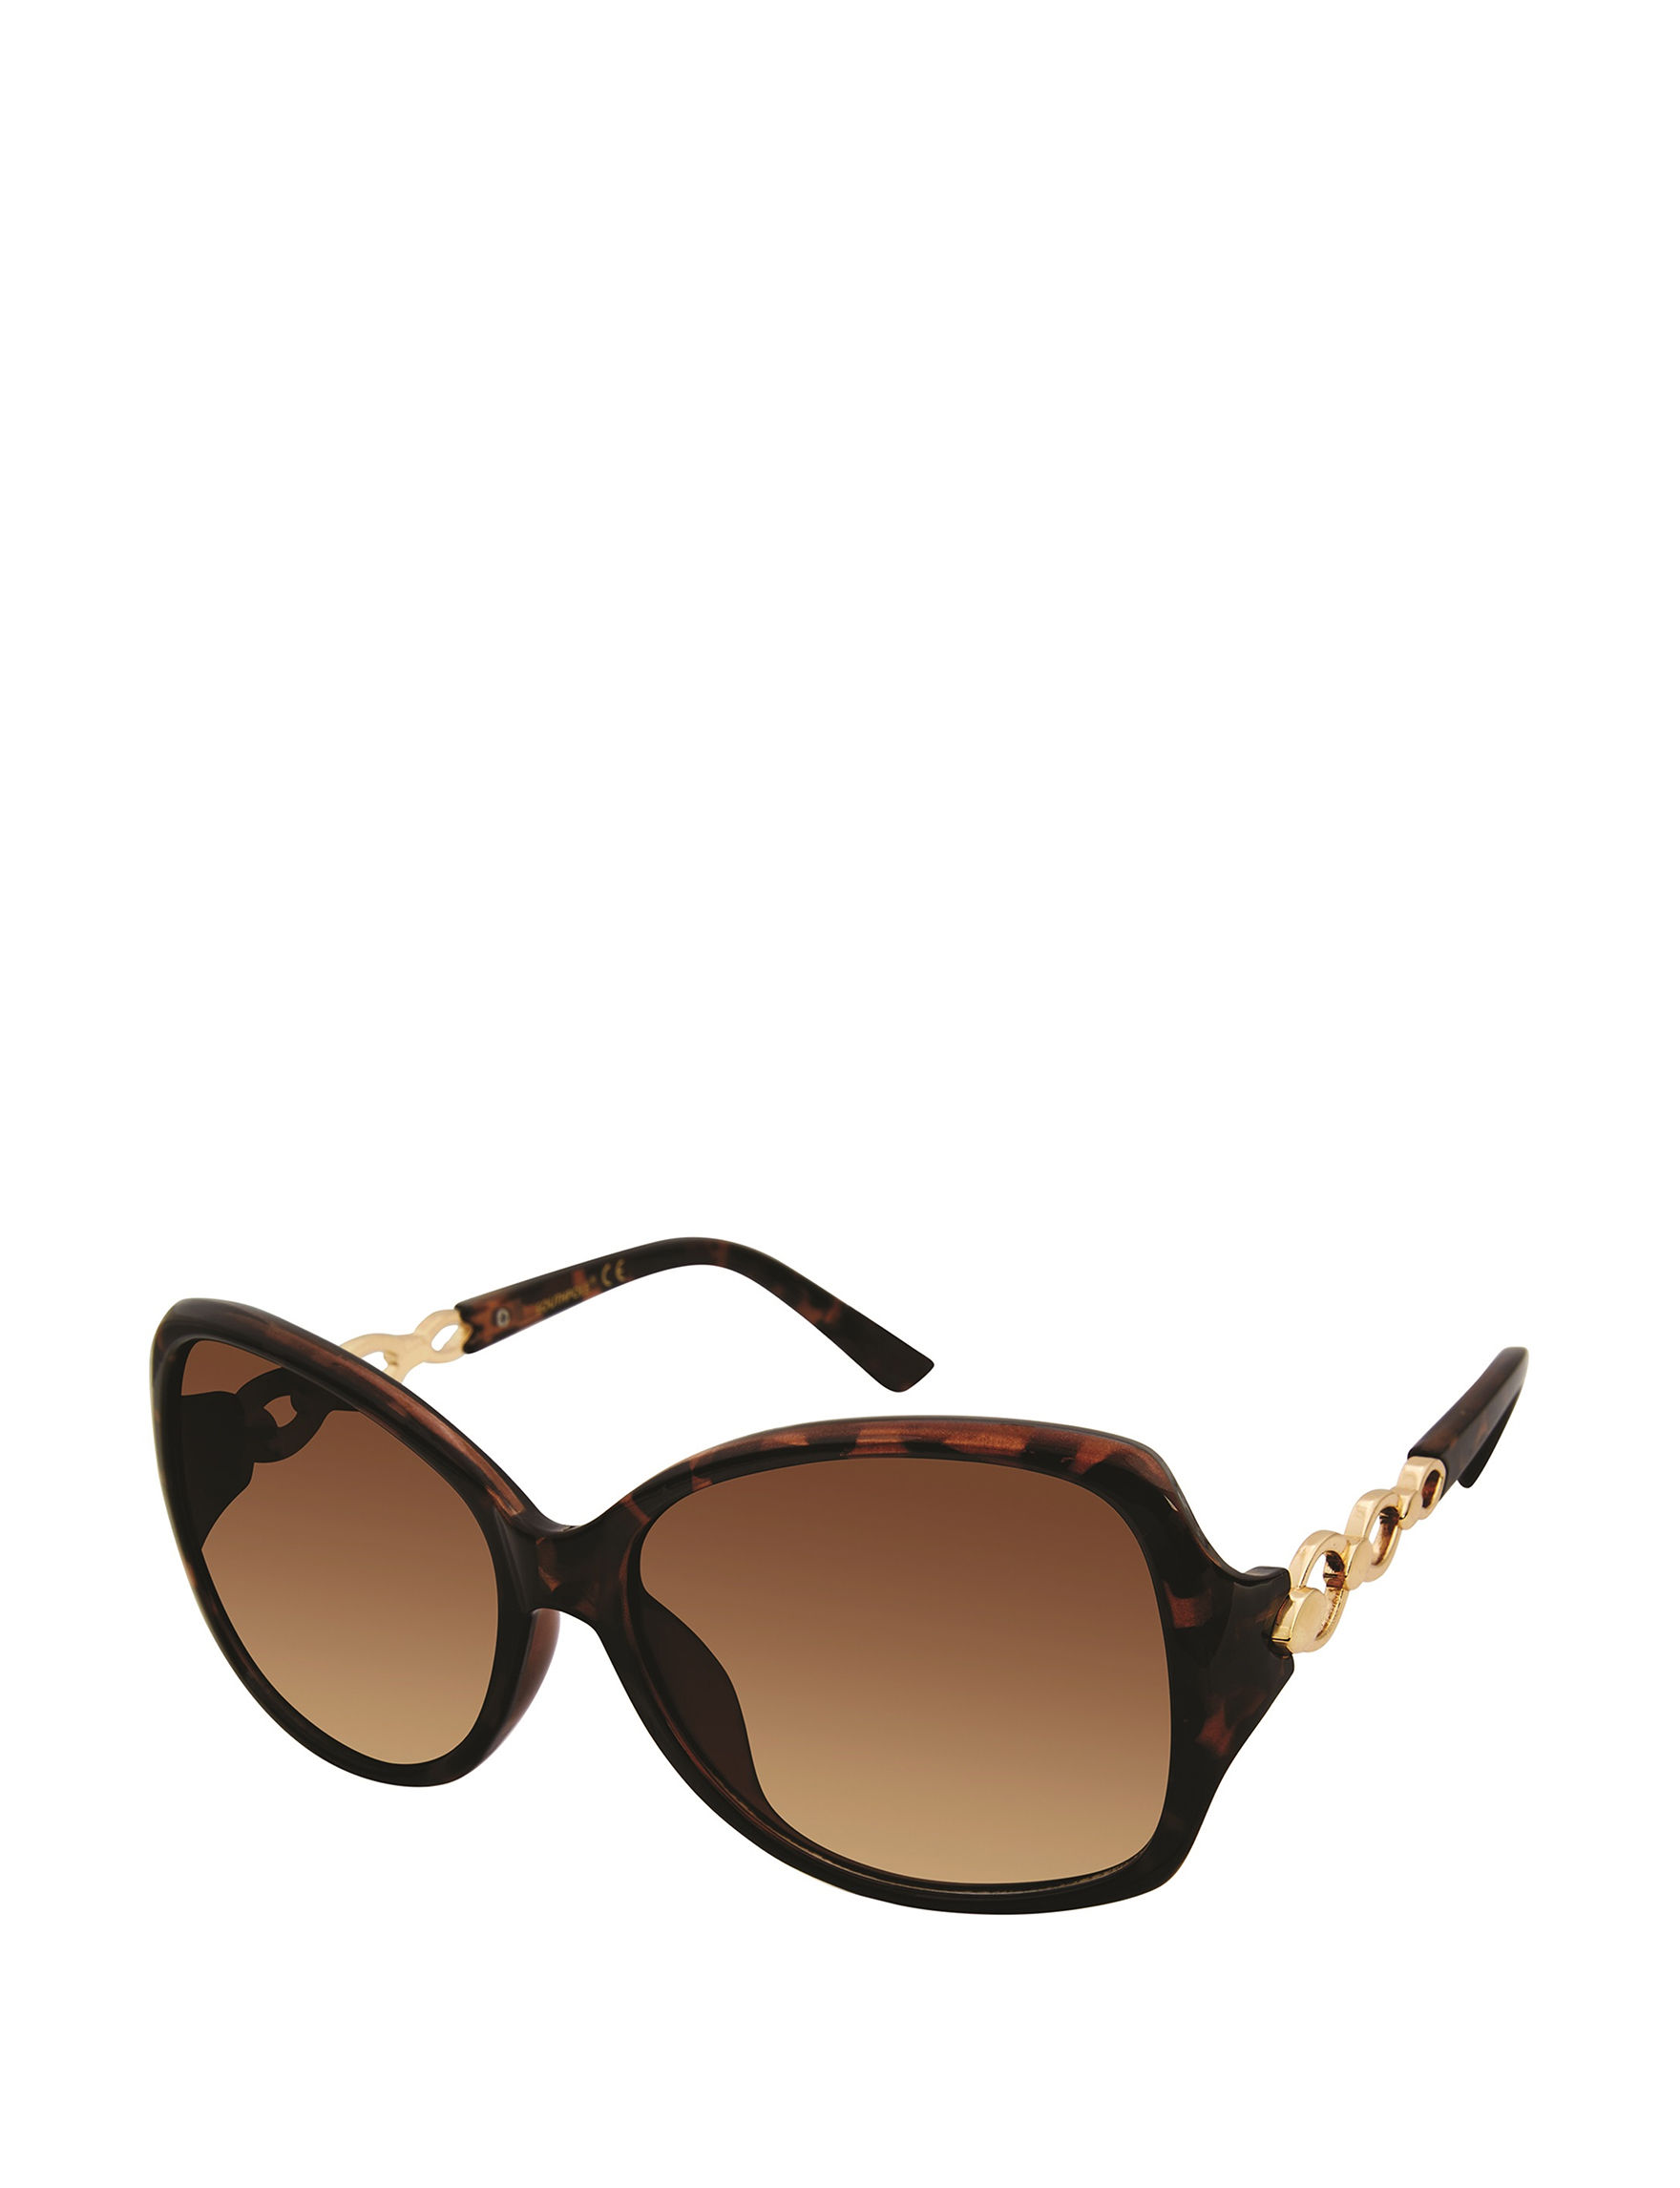 Southpole Brown Tortoise Shell